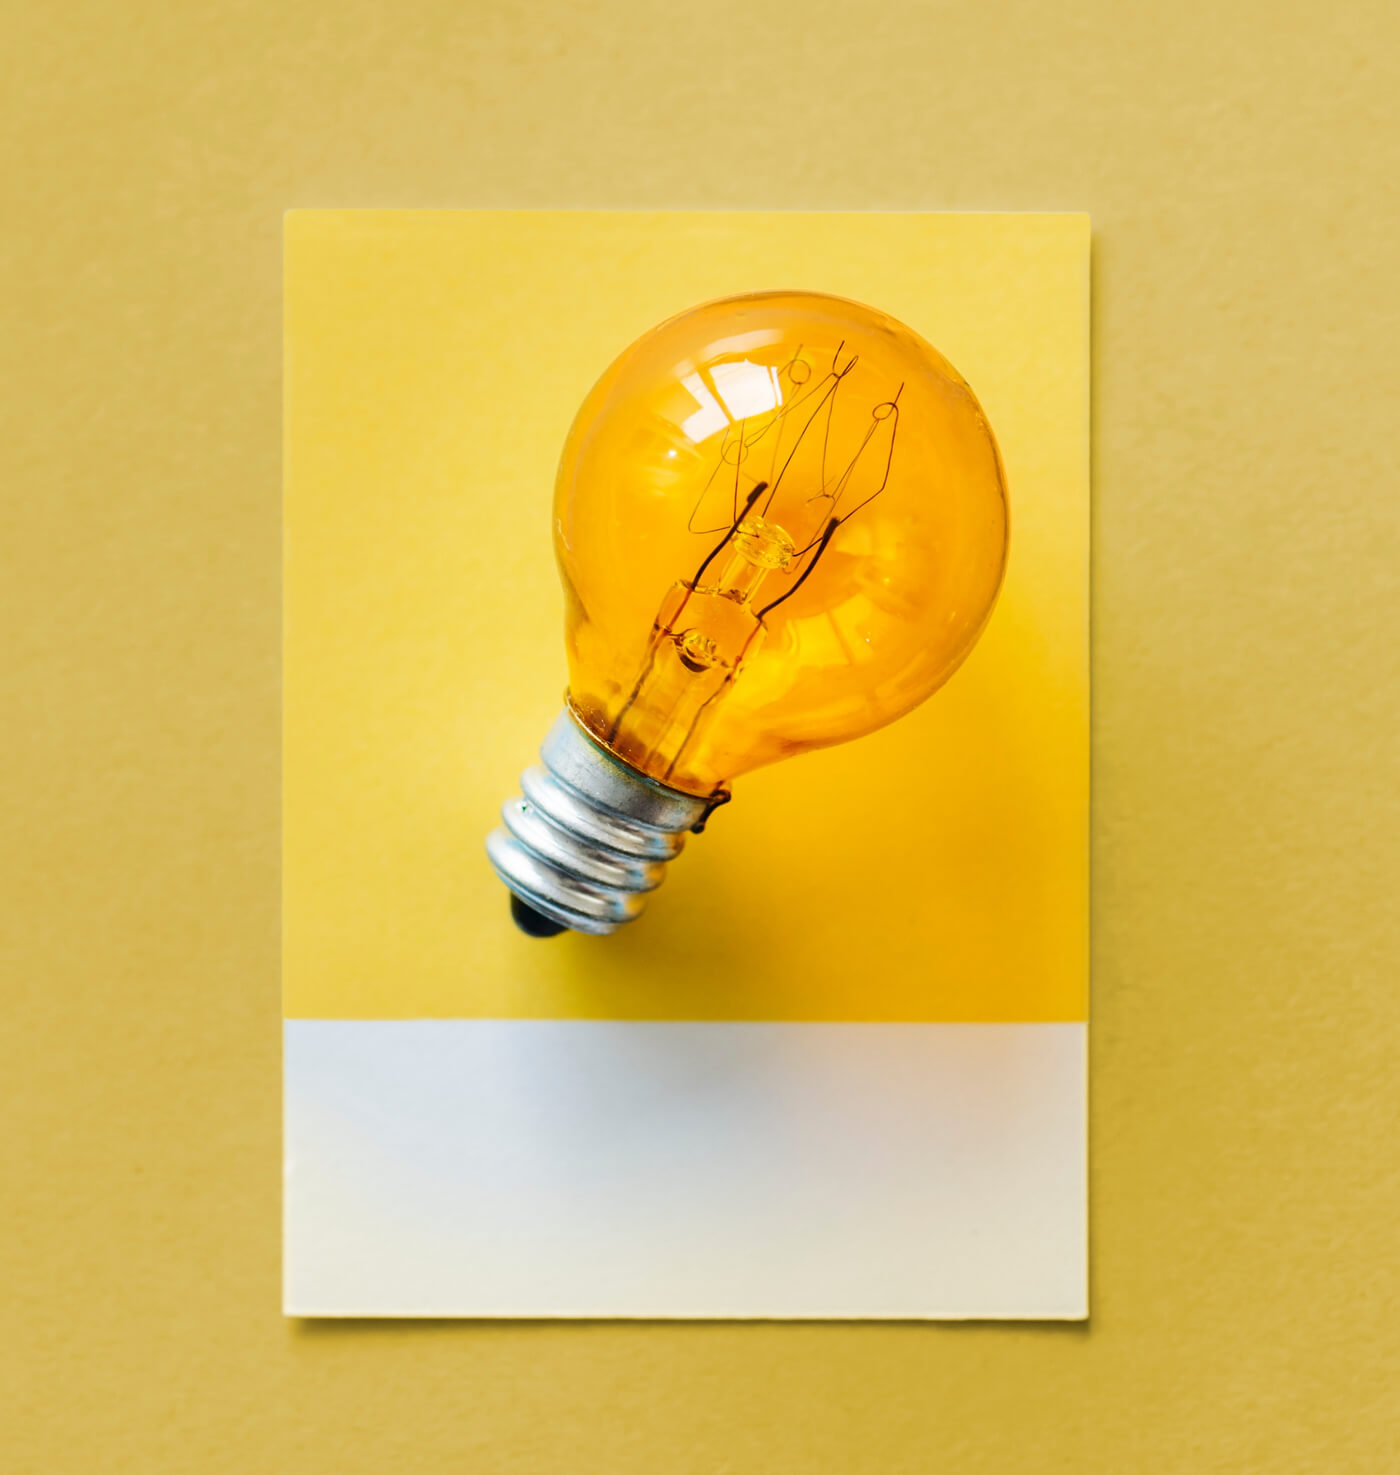 a bulb on the orange background